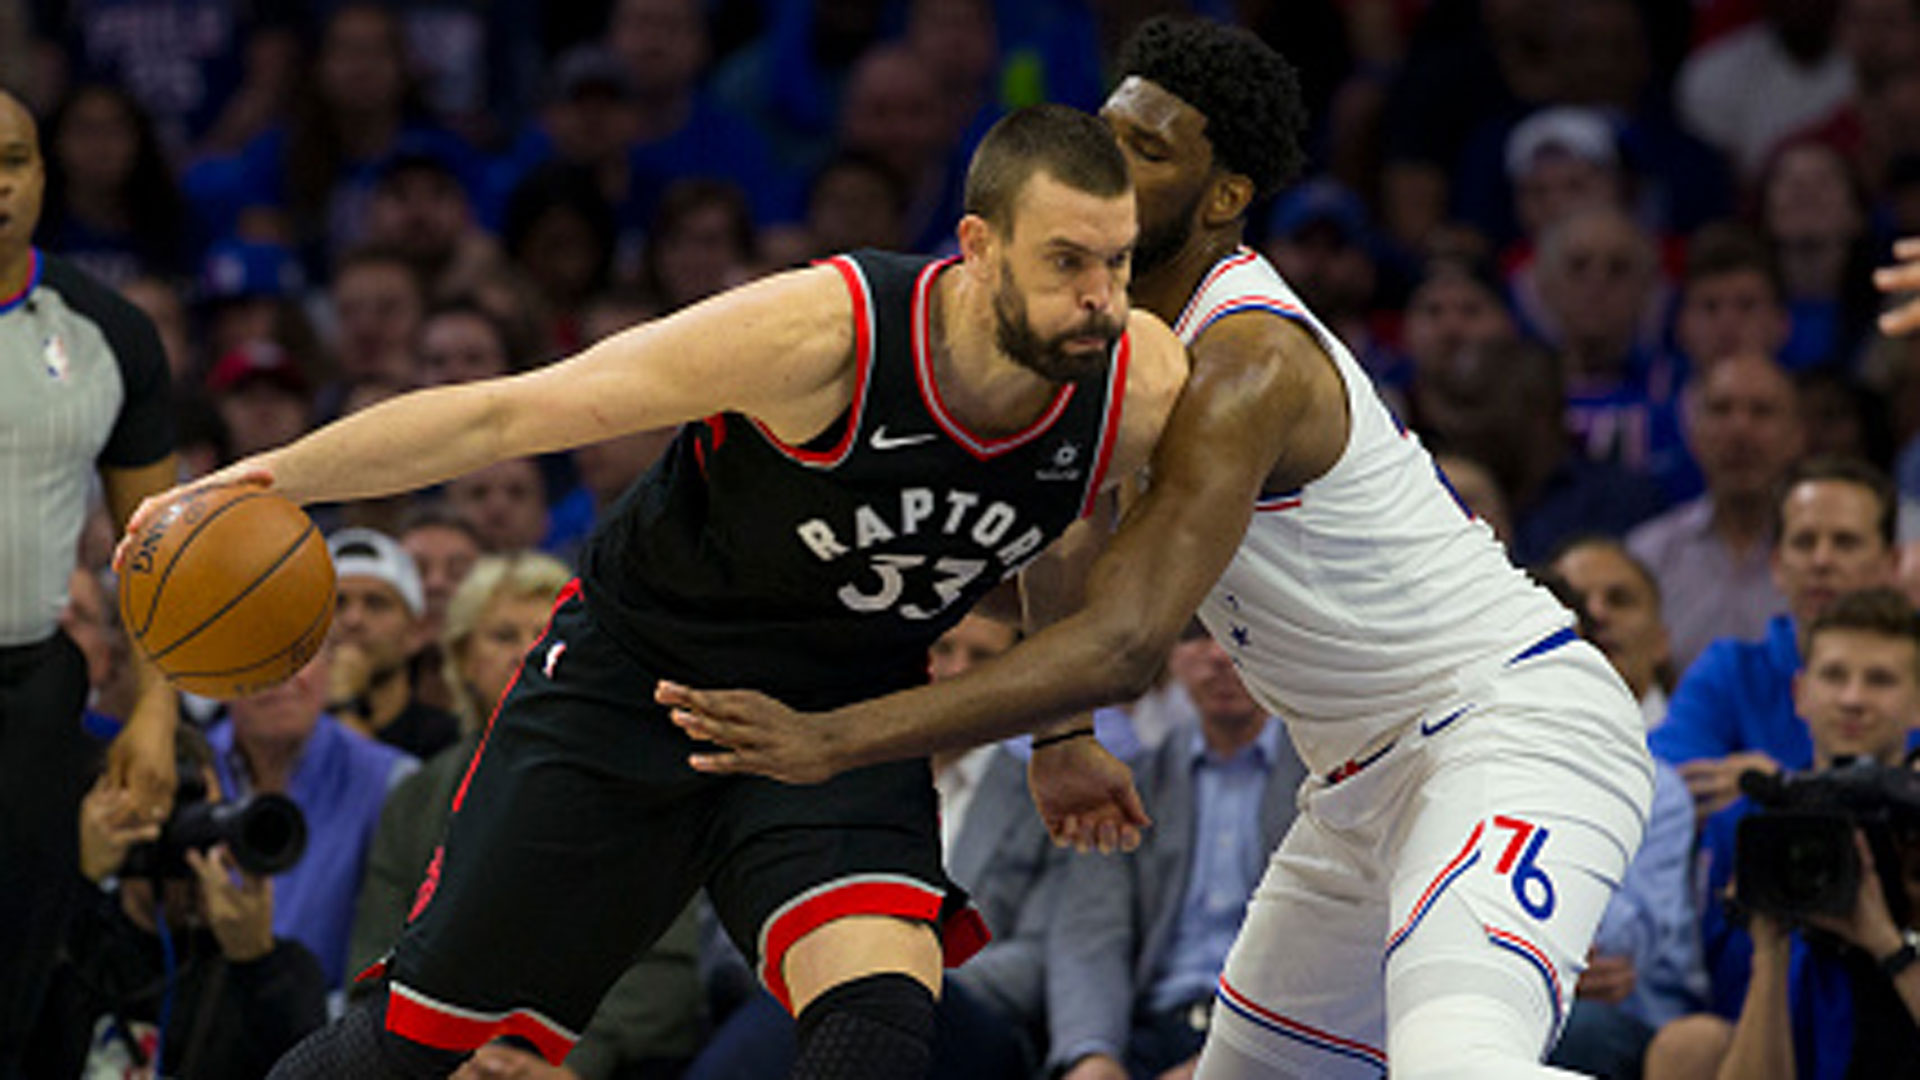 Flipboard: NBA Playoffs: Ben Simmons' 76ers Vs Raptors